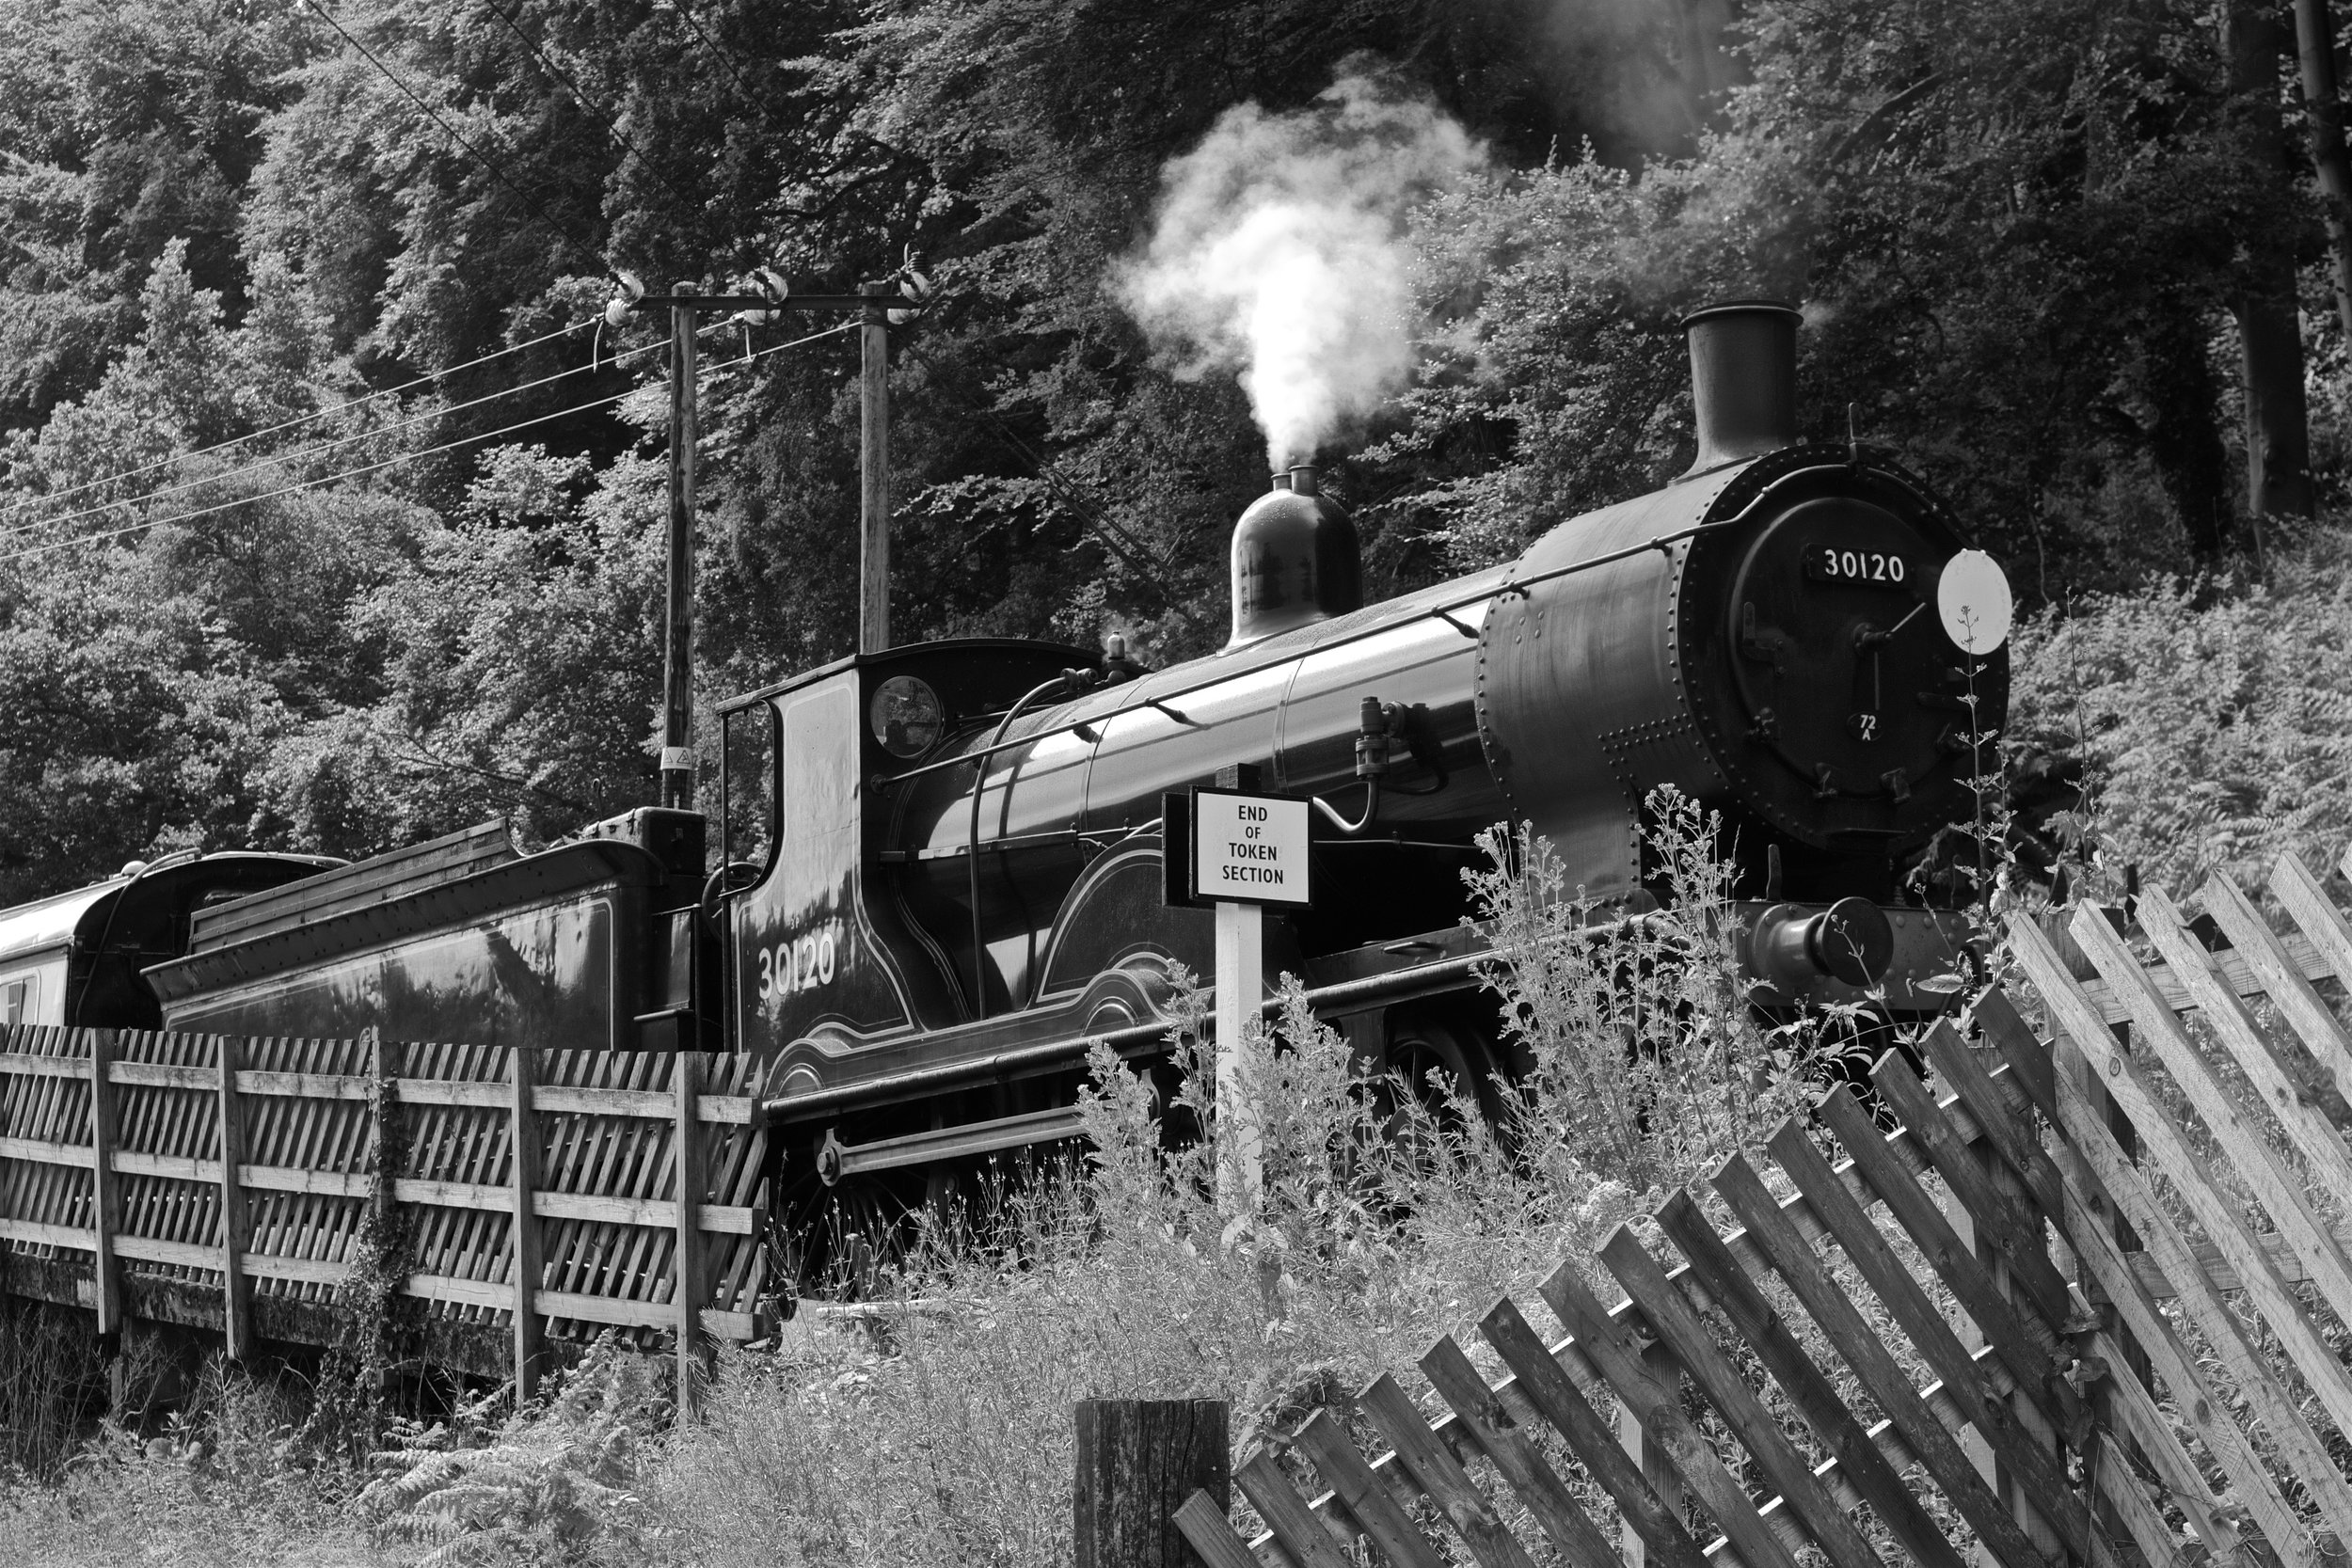 T9 No. 30120 at the Dean Forrest Railway Gala 2016 - photo by Gwion Rhys Davies